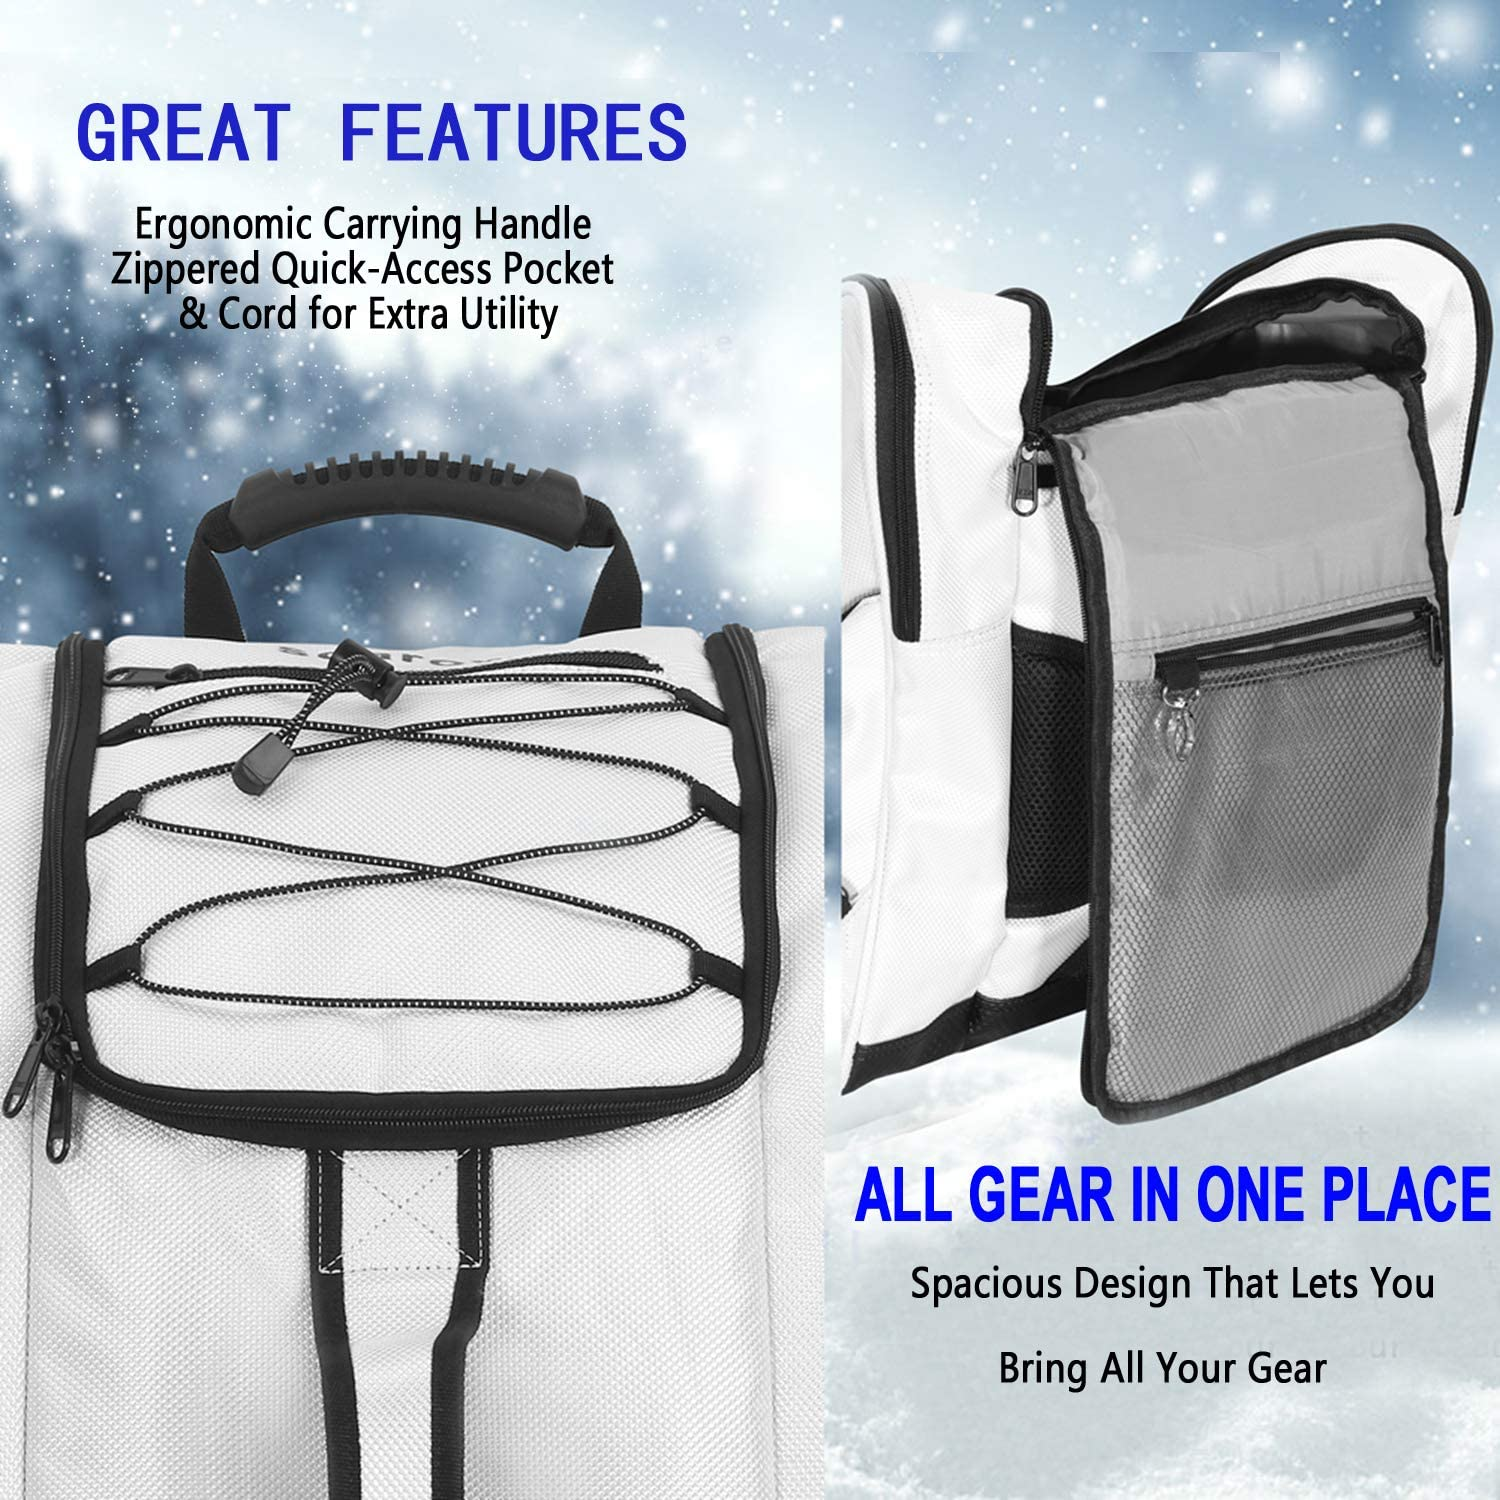 for Men Skiing Travel Luggage Women and Youth Excellent for Travel with Waterproof Exterior /& Bottom SoarOwl Ski Boot Bag